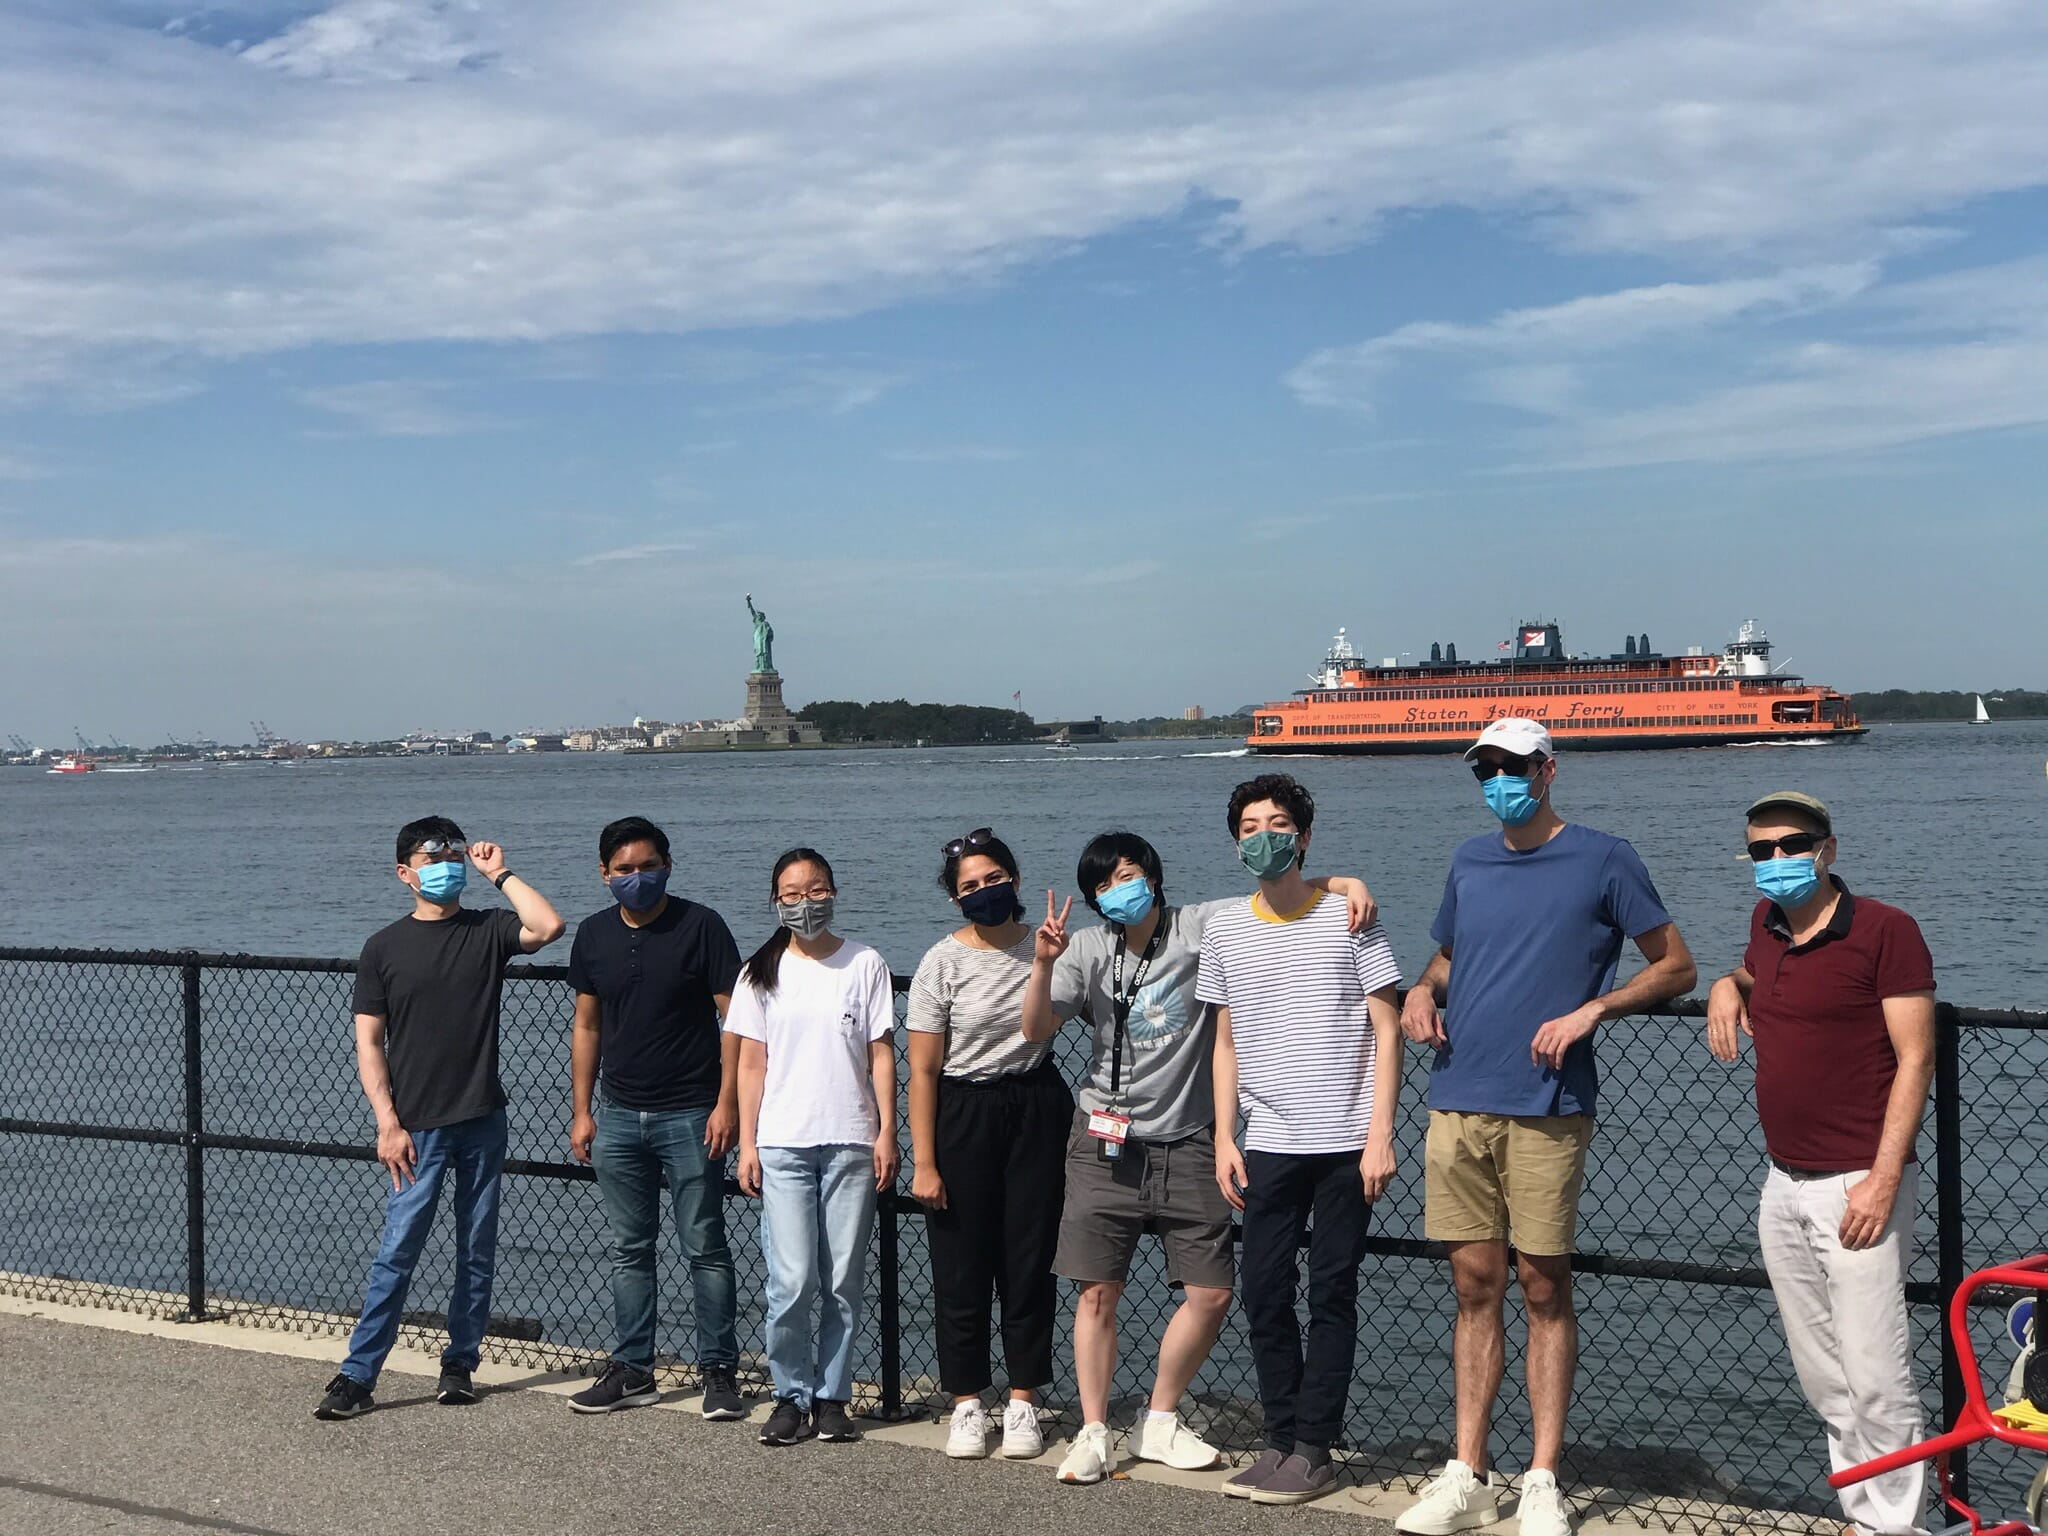 Lab trip to Governor's Island!